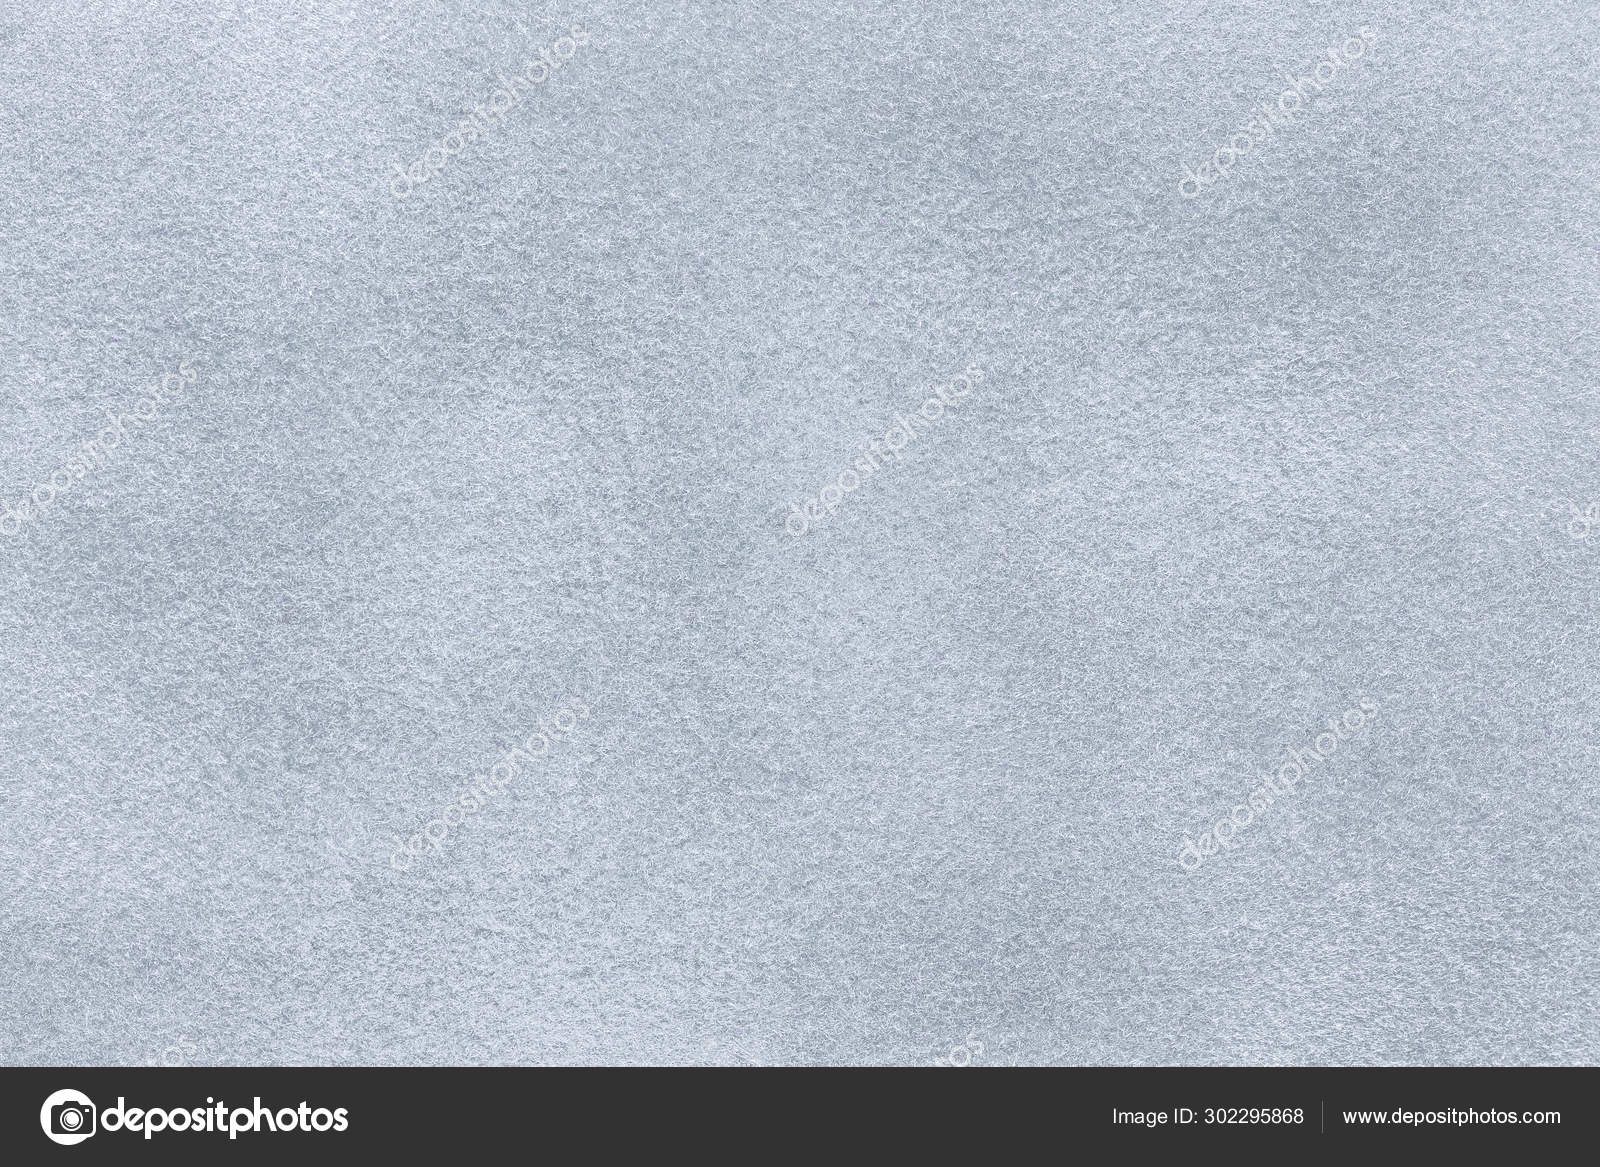 Background Of Light Gray Suede Fabric Closeup Velvet Matt Texture Of Silver Nubuck Textile Stock Photo C Nikol85 302295868